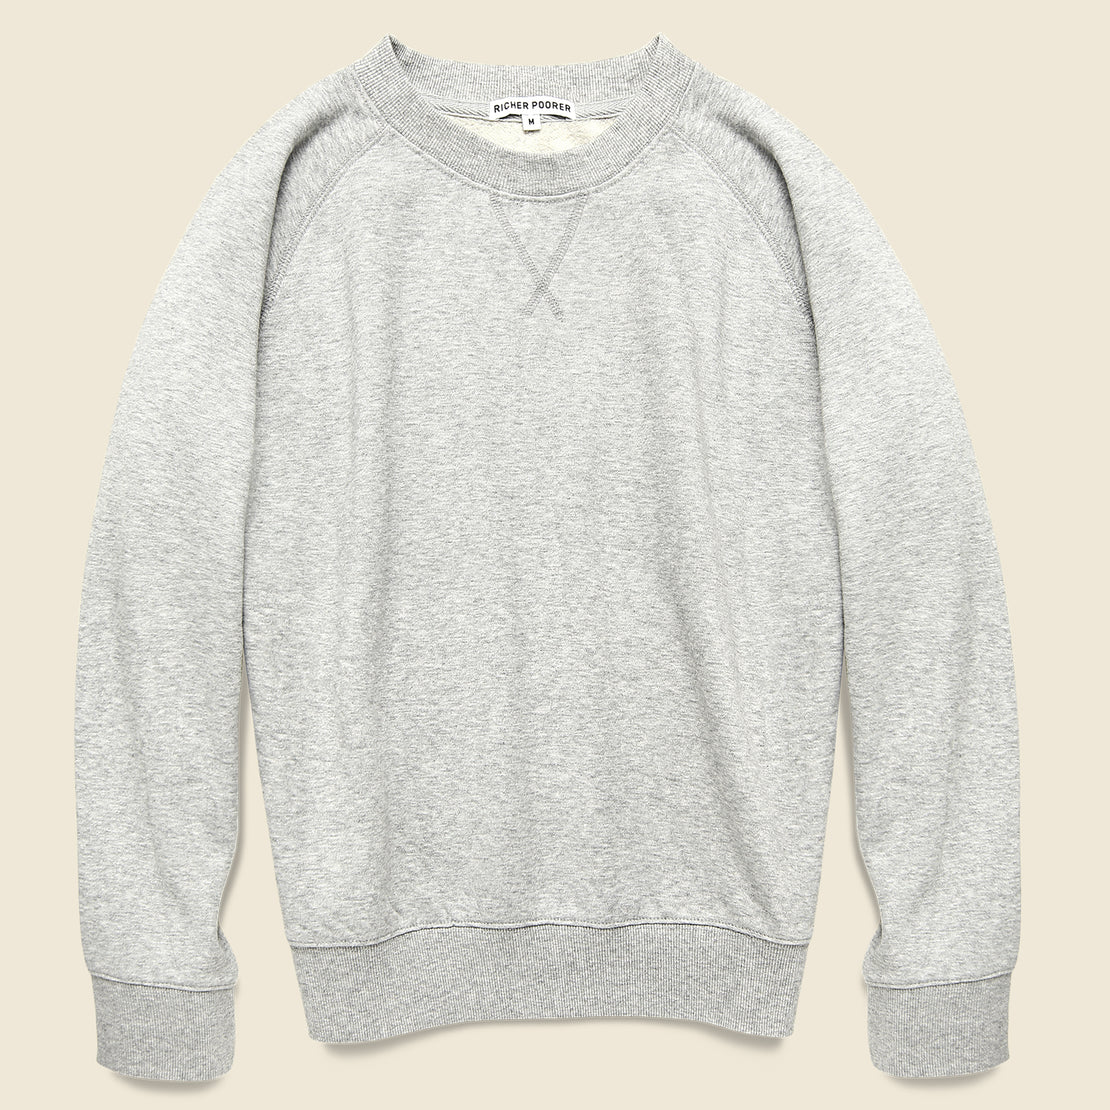 Richer Poorer Crew Sweatshirt - Heather Grey